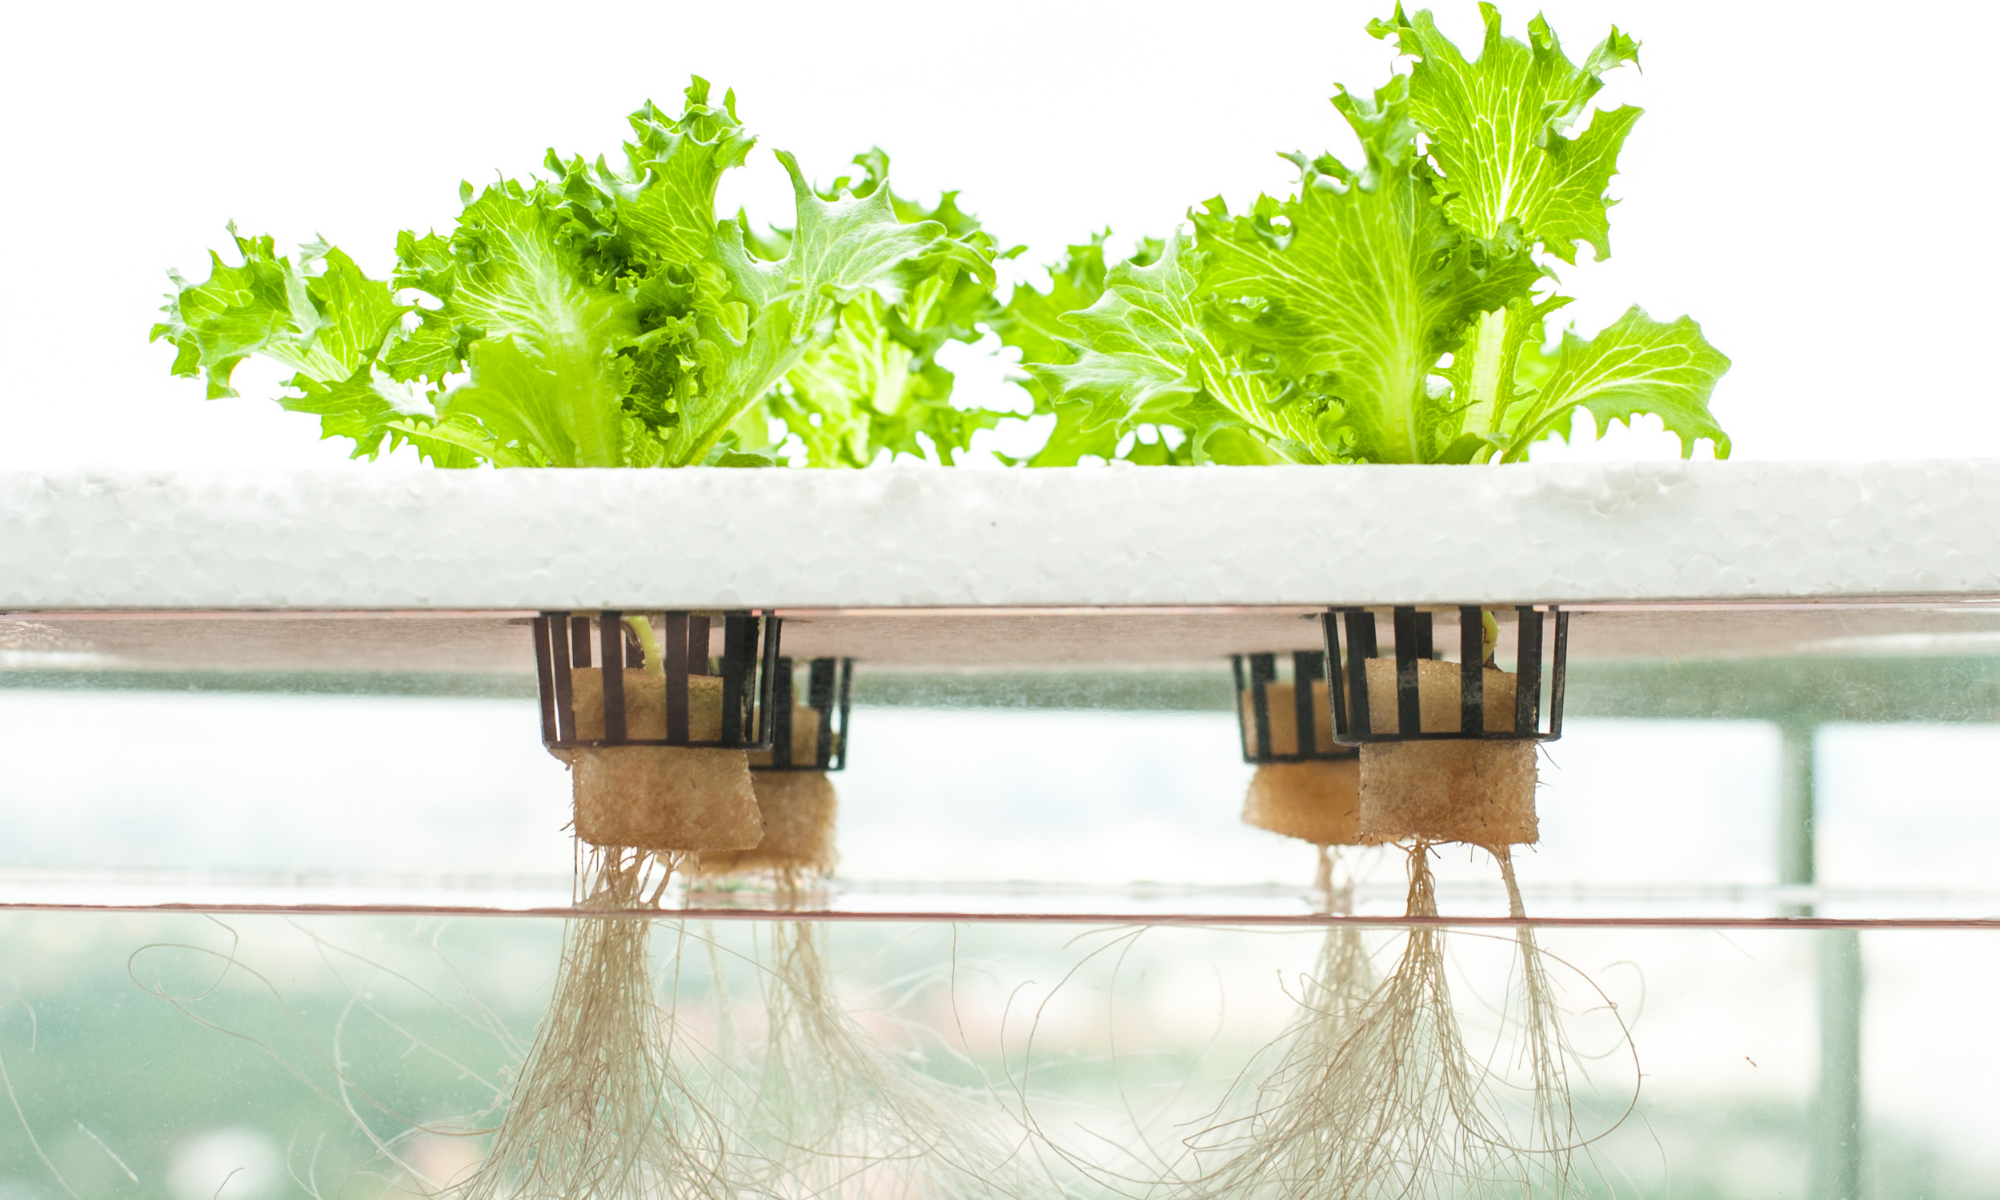 Is a Hydroponic Garden Cost Effective?